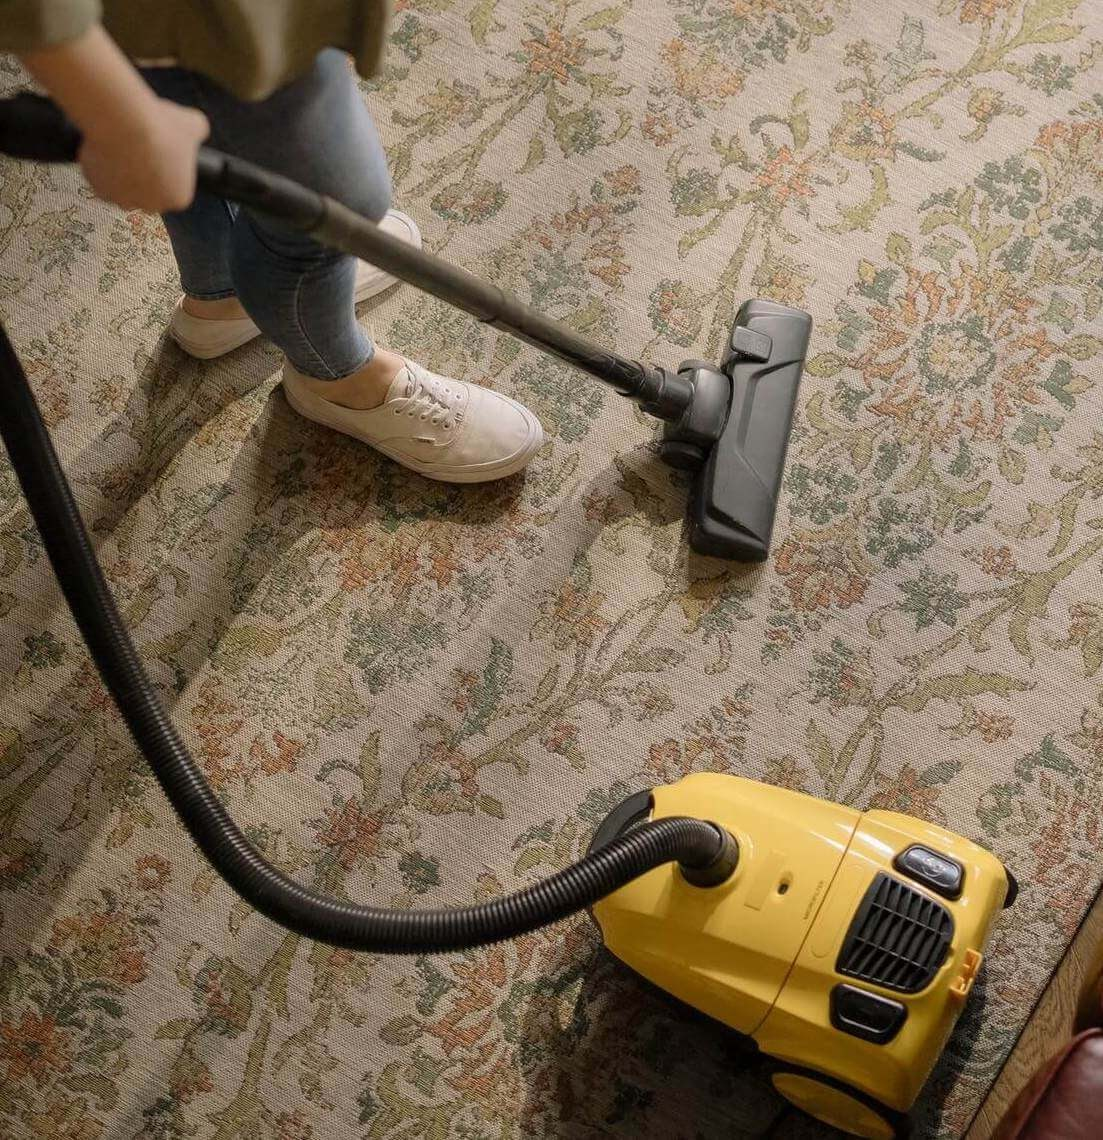 lady using a vacuum cleaner on carpets